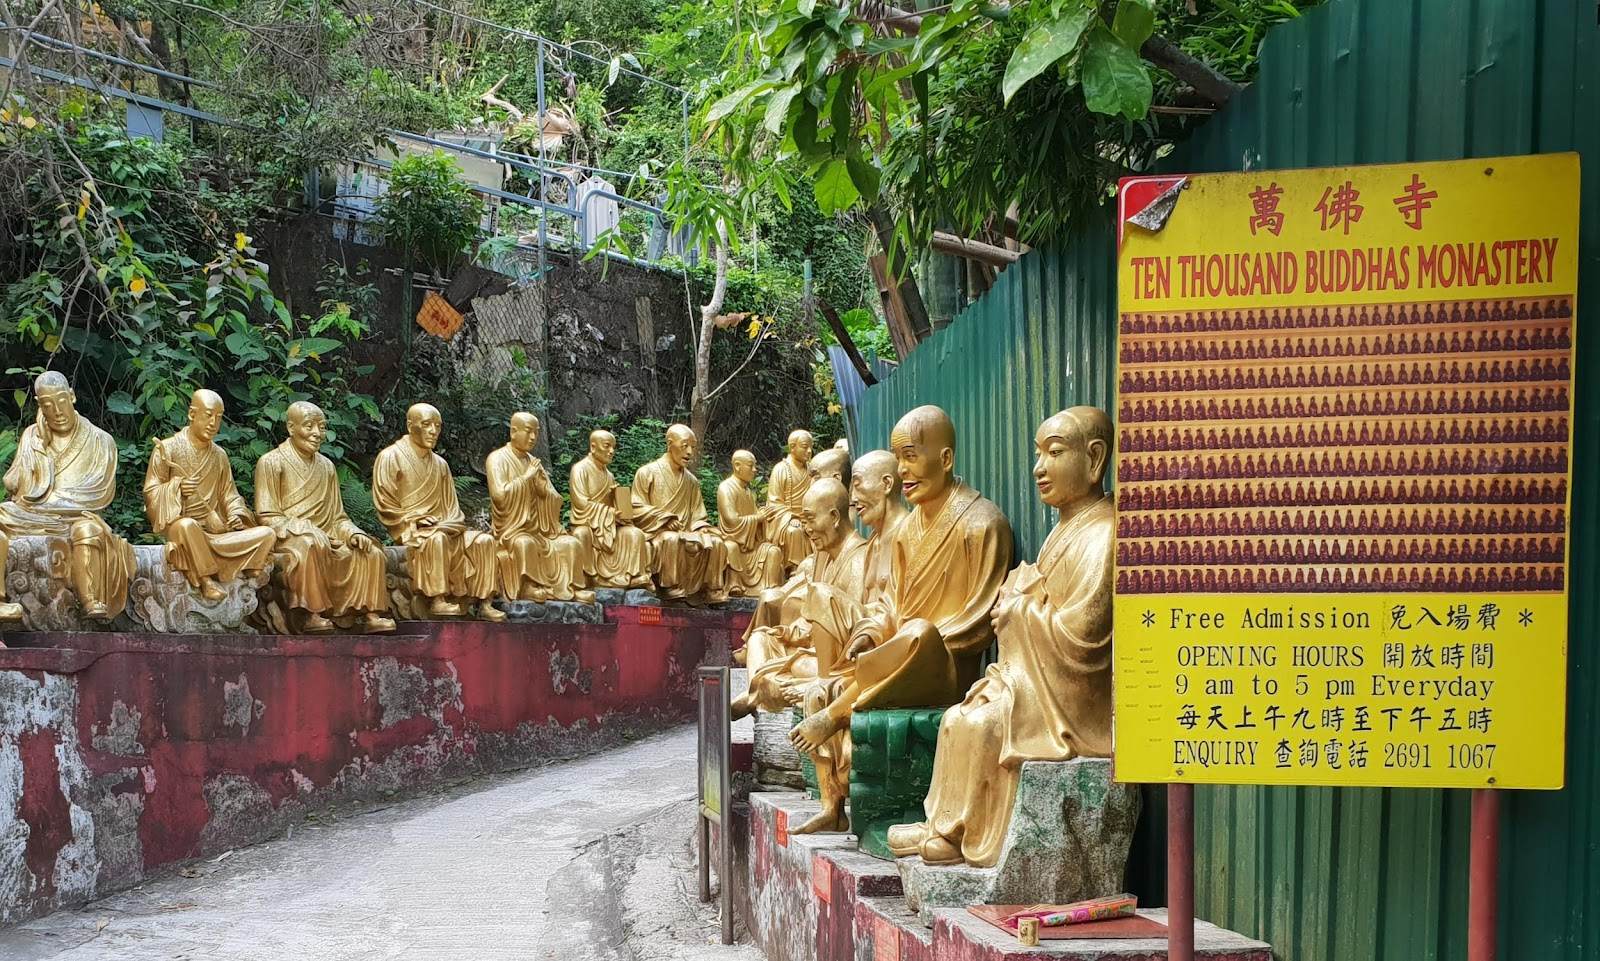 10000 buddhas monastery a side trip while family friendly cycling in Hong Kong